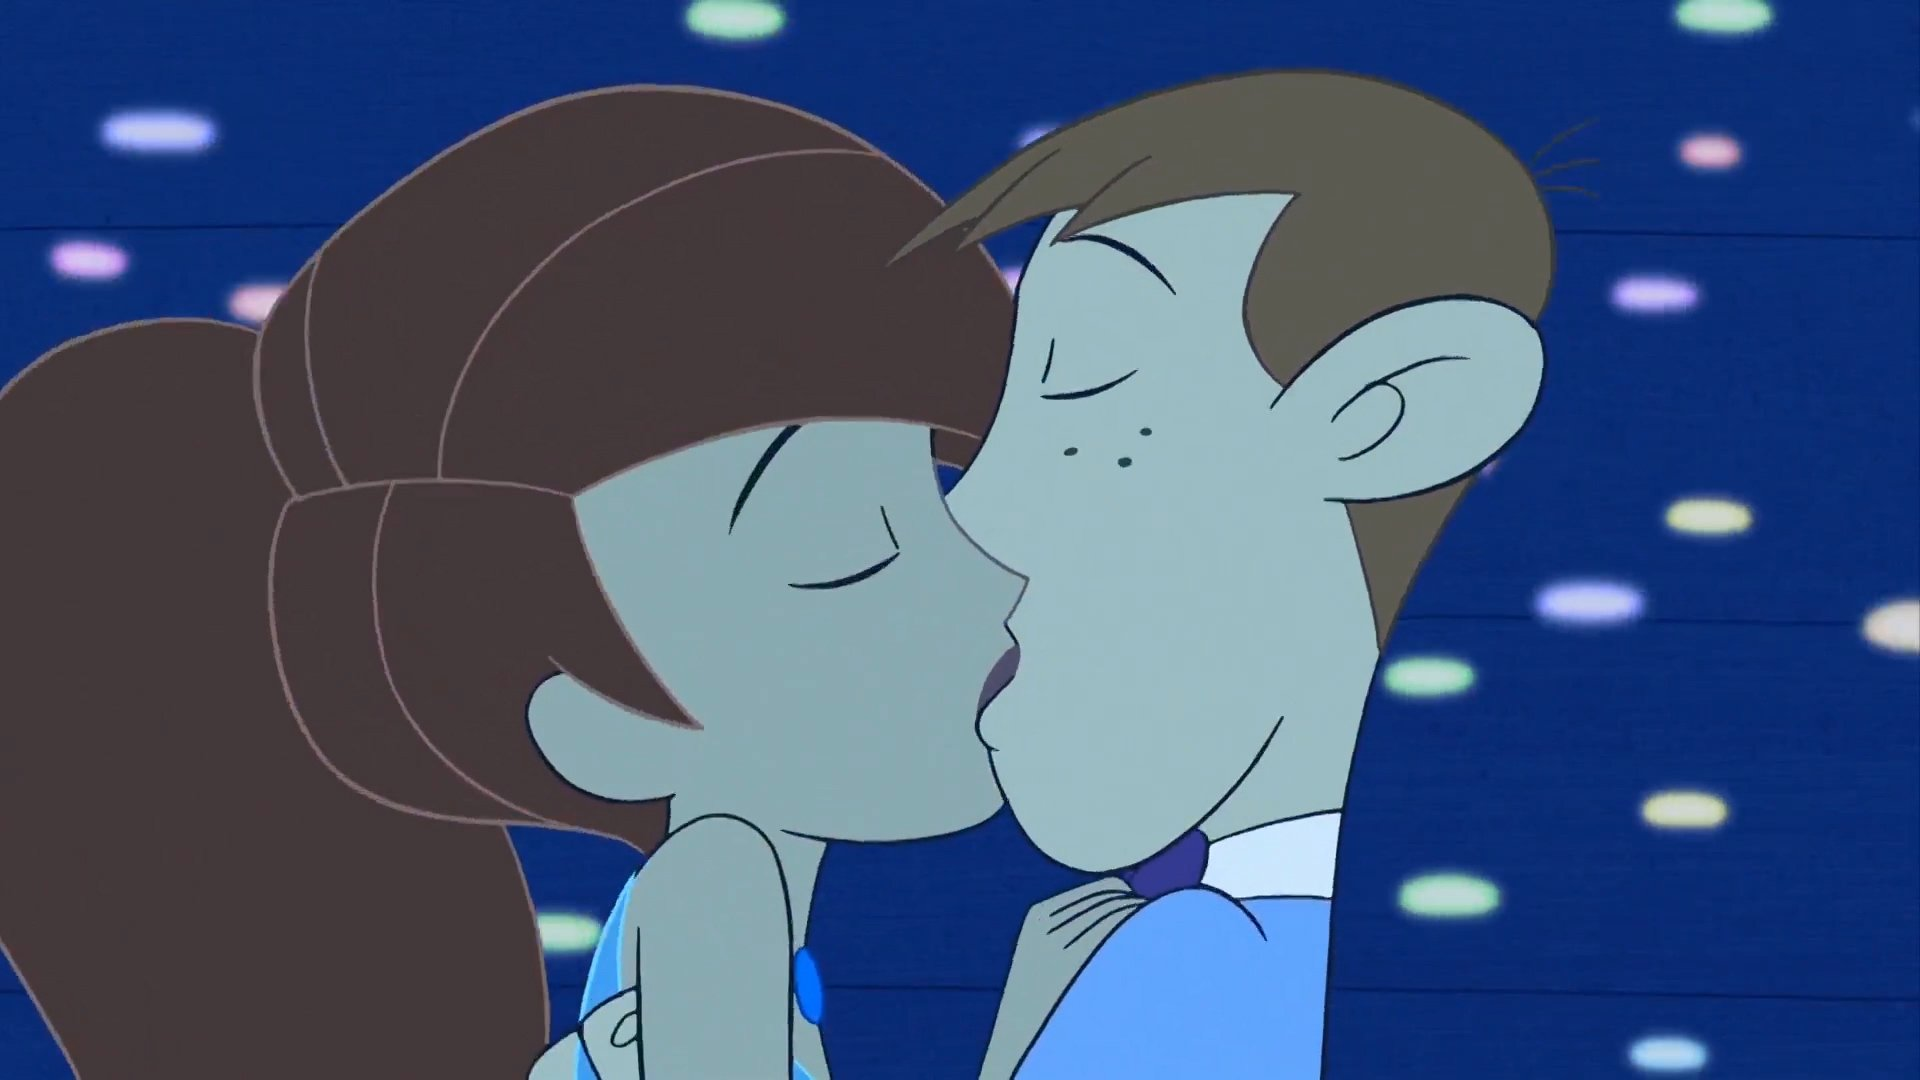 Wallpaper Gravity Falls Iphone Kim And Ron Kissing At Prom Night Hd Wallpaper